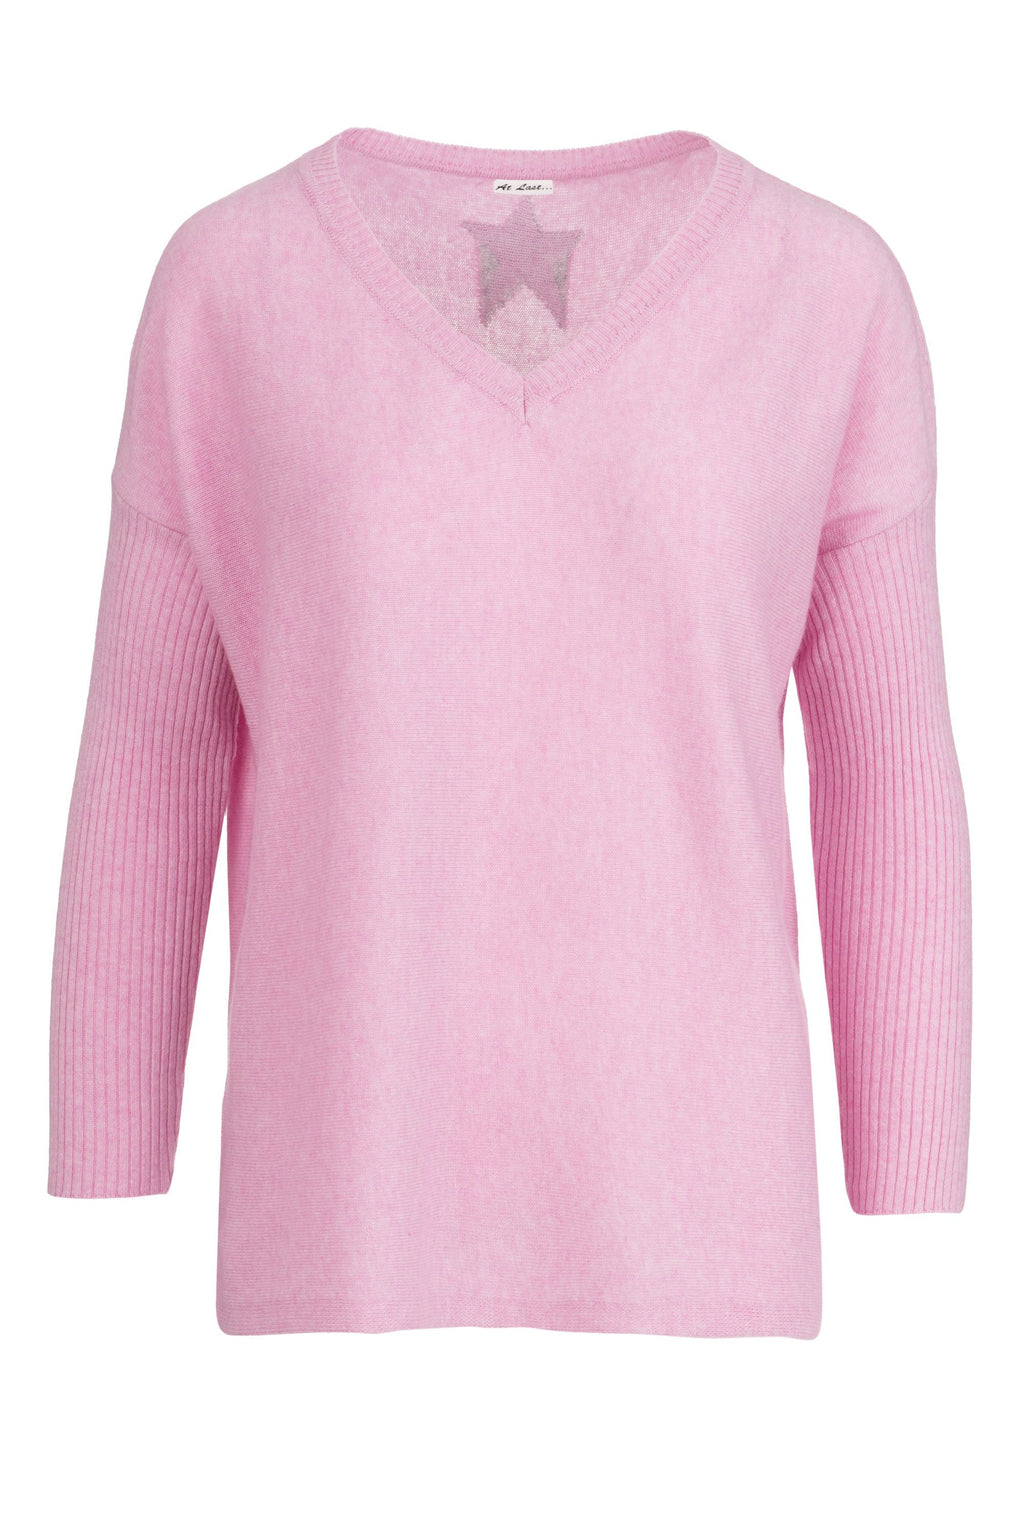 Cashmere Sweater- Pink with Back Star